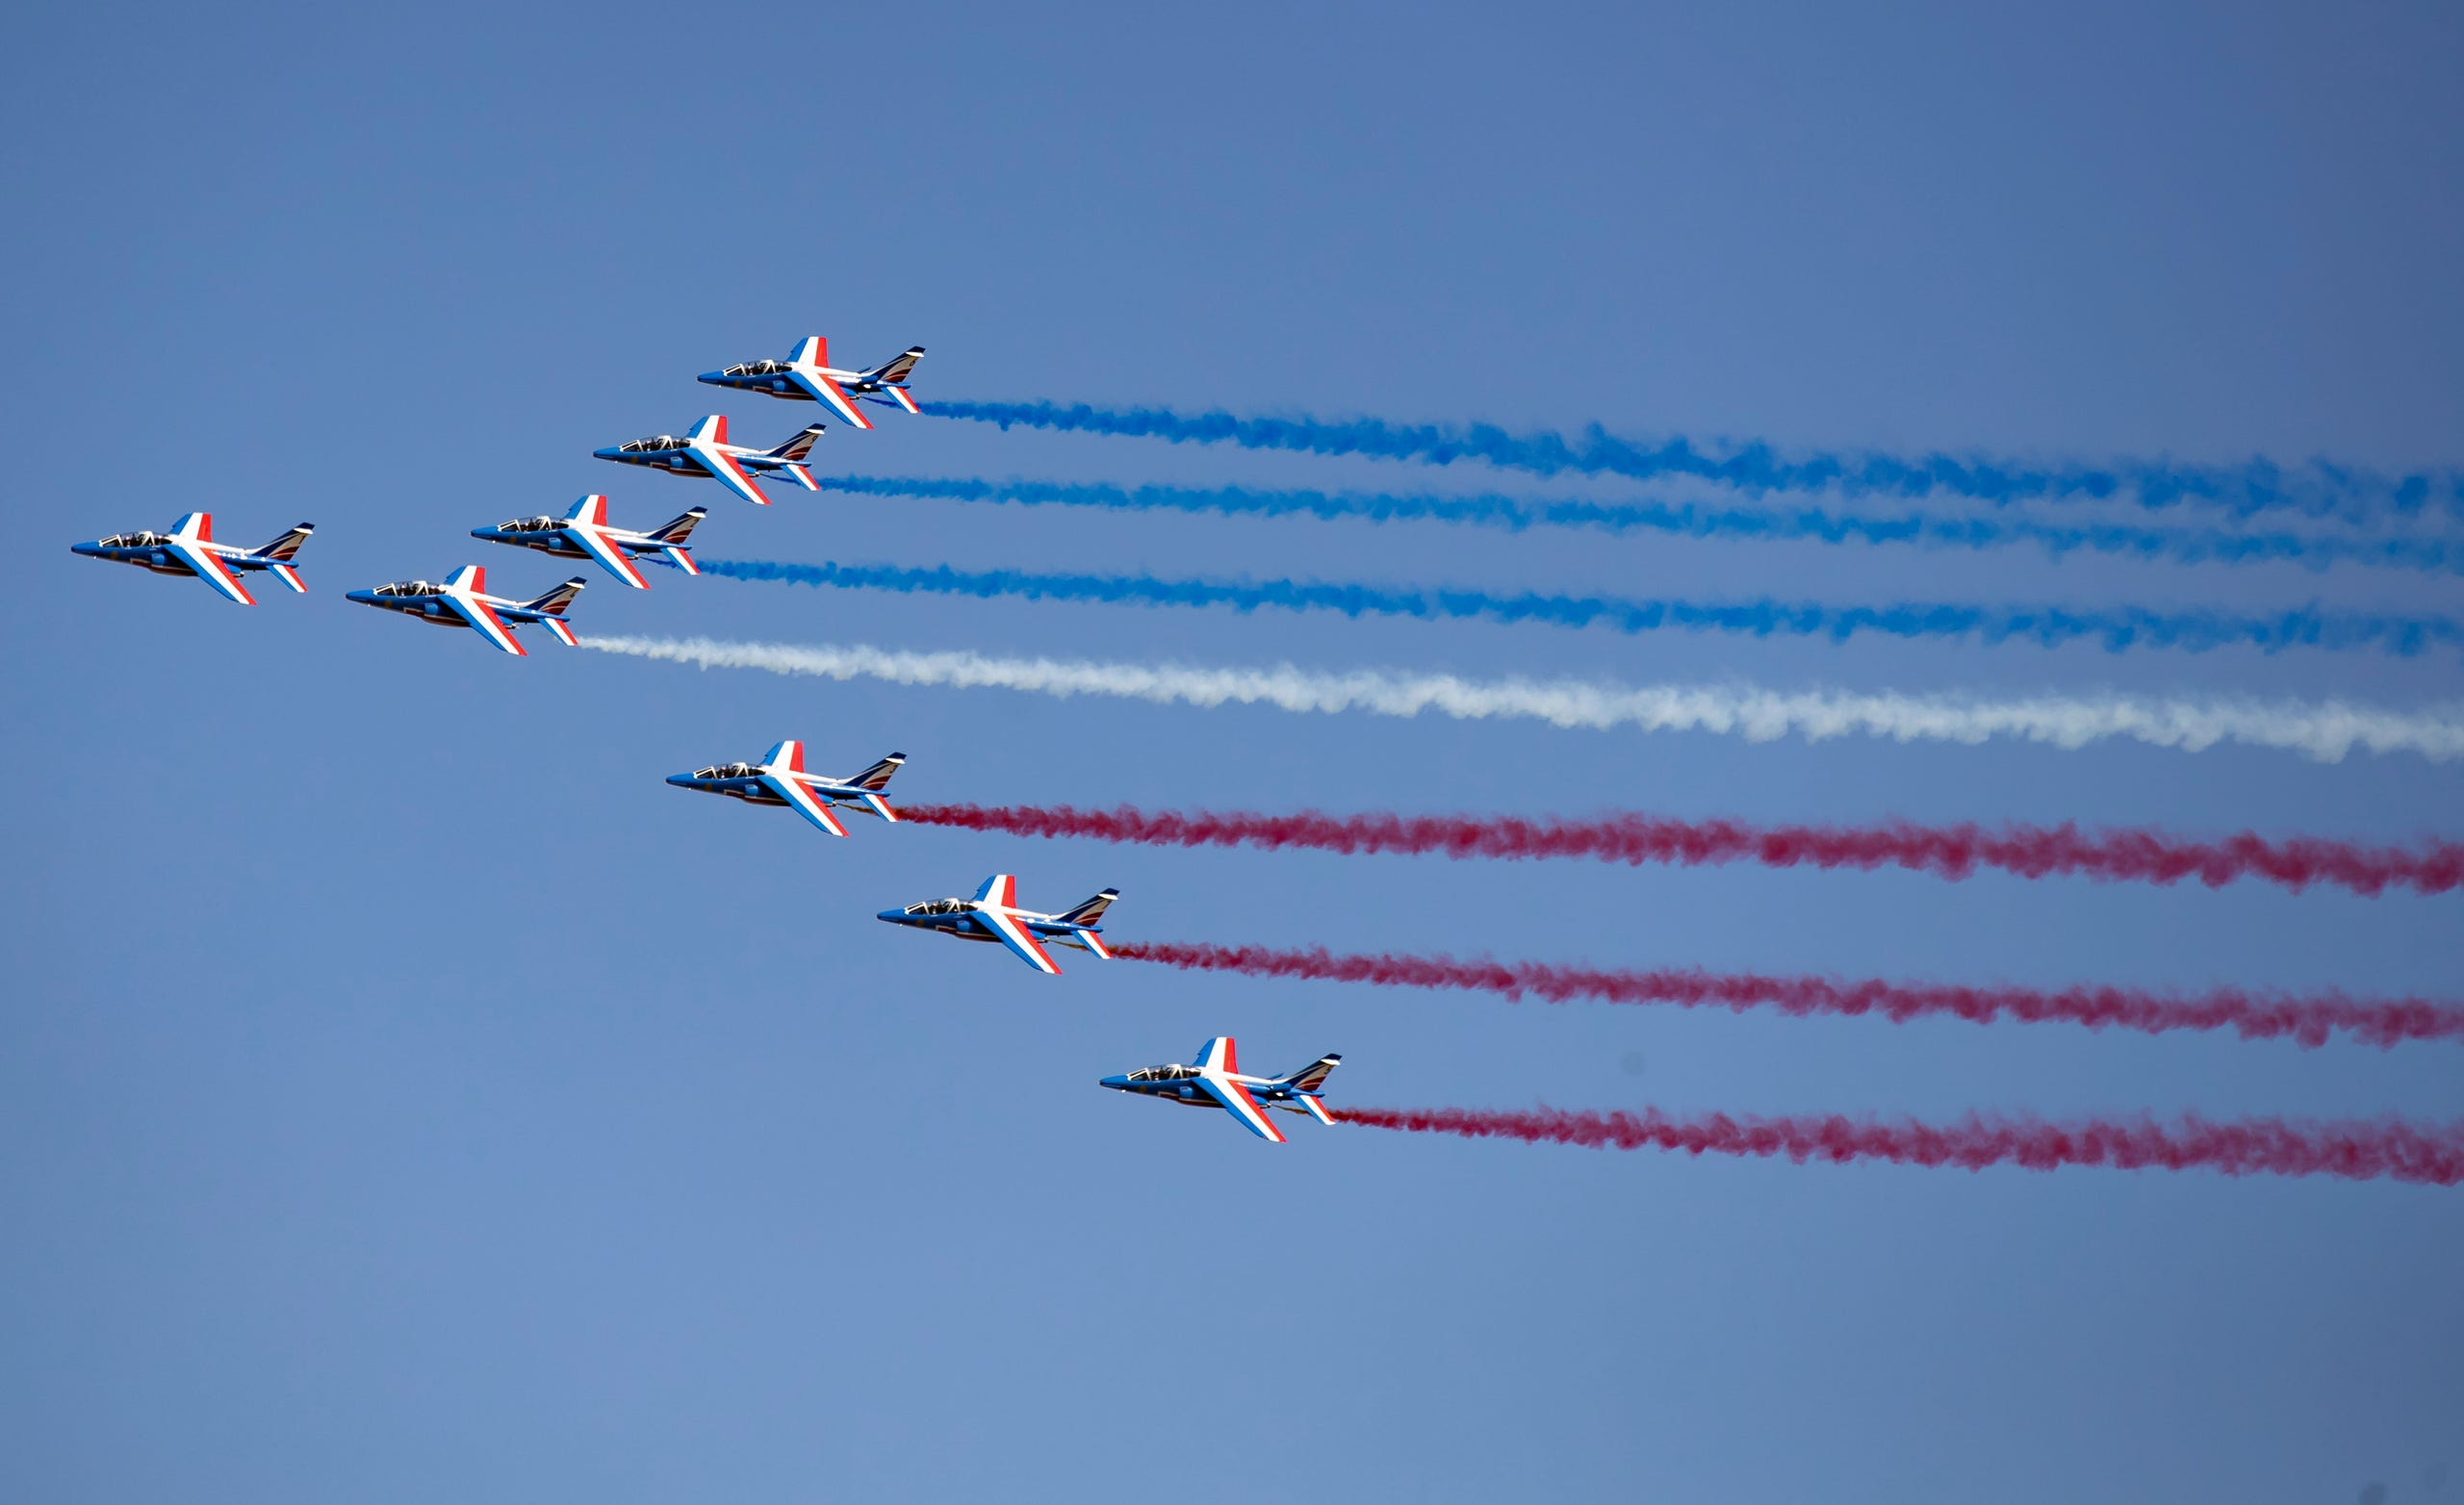 Alpha jets from the French Air Force Patrouille de France perform a demonstration, June 17, 2019.